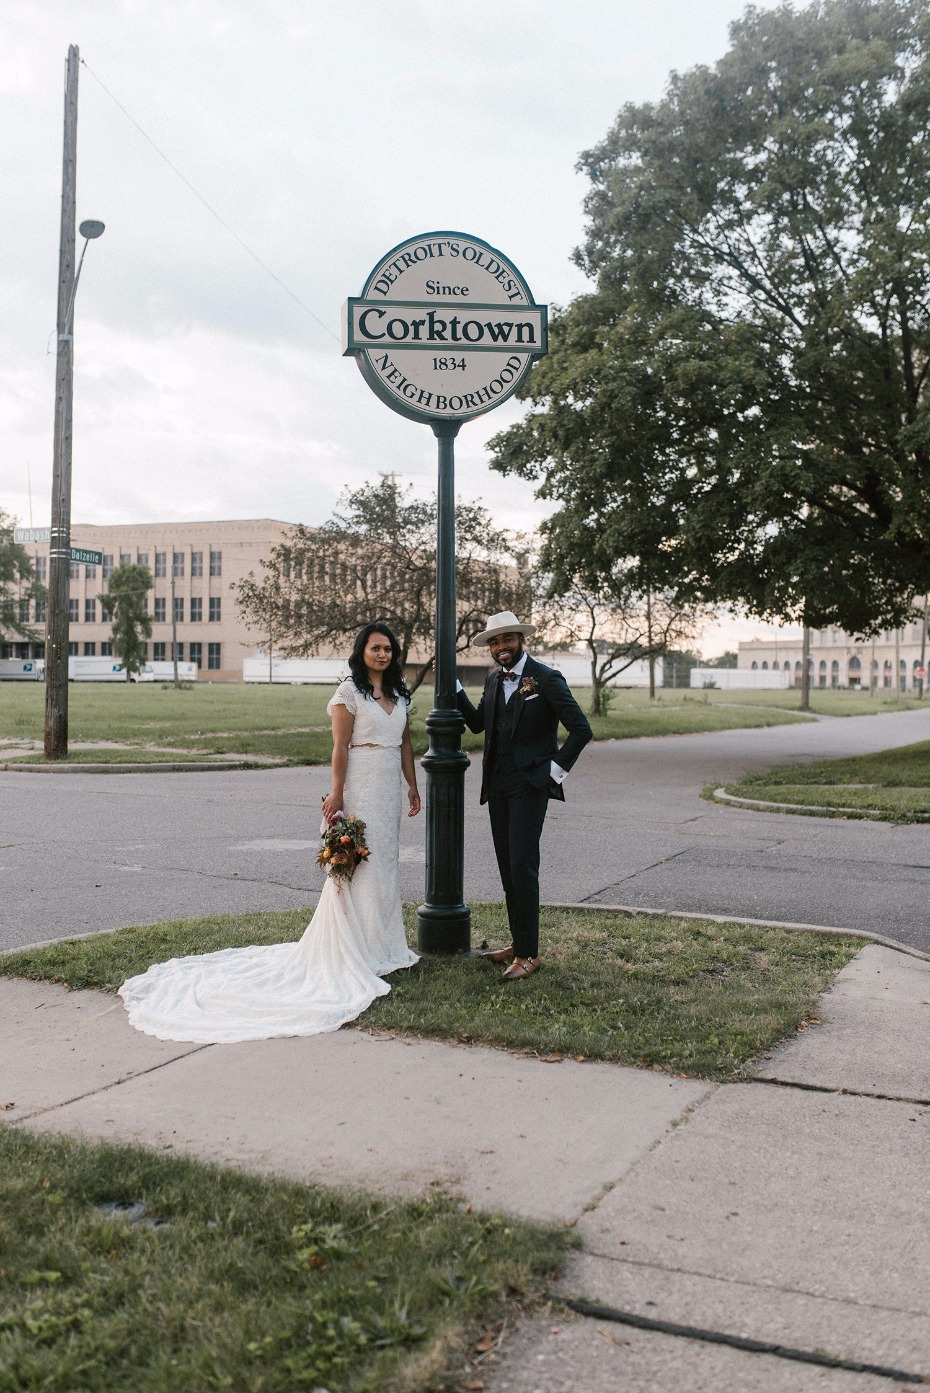 Have an at-home elopement